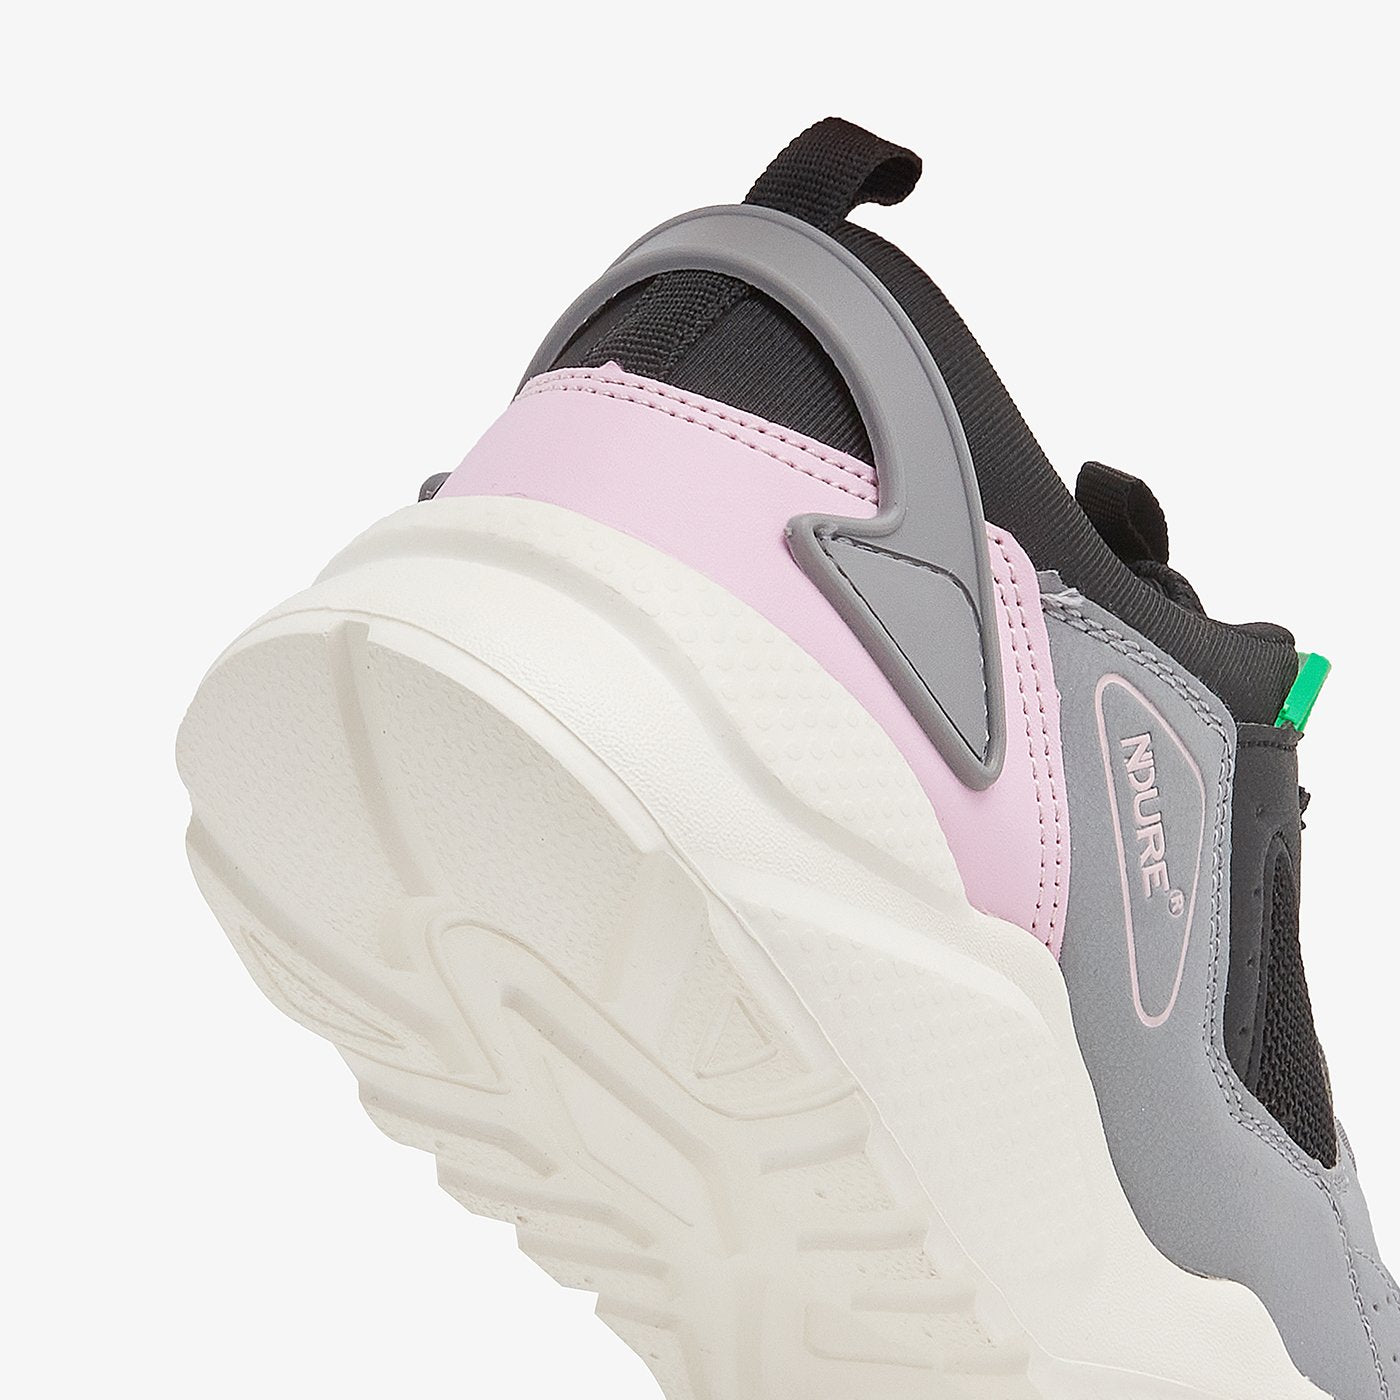 Chic Athletic Shoes for Women